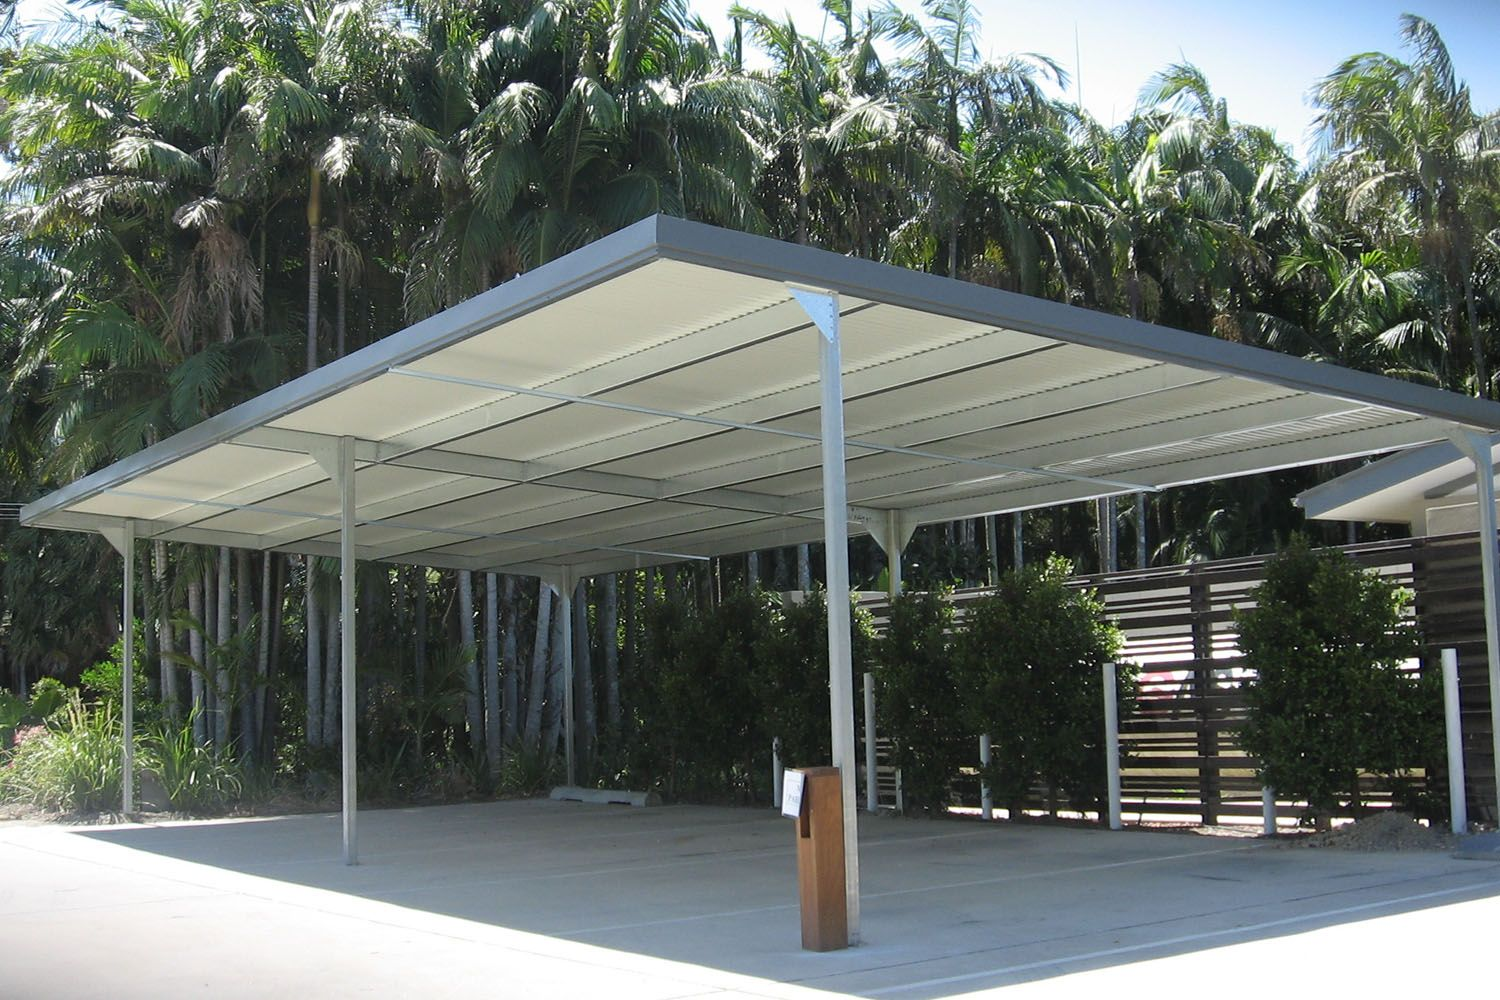 Flat climax multi housing character carports have been